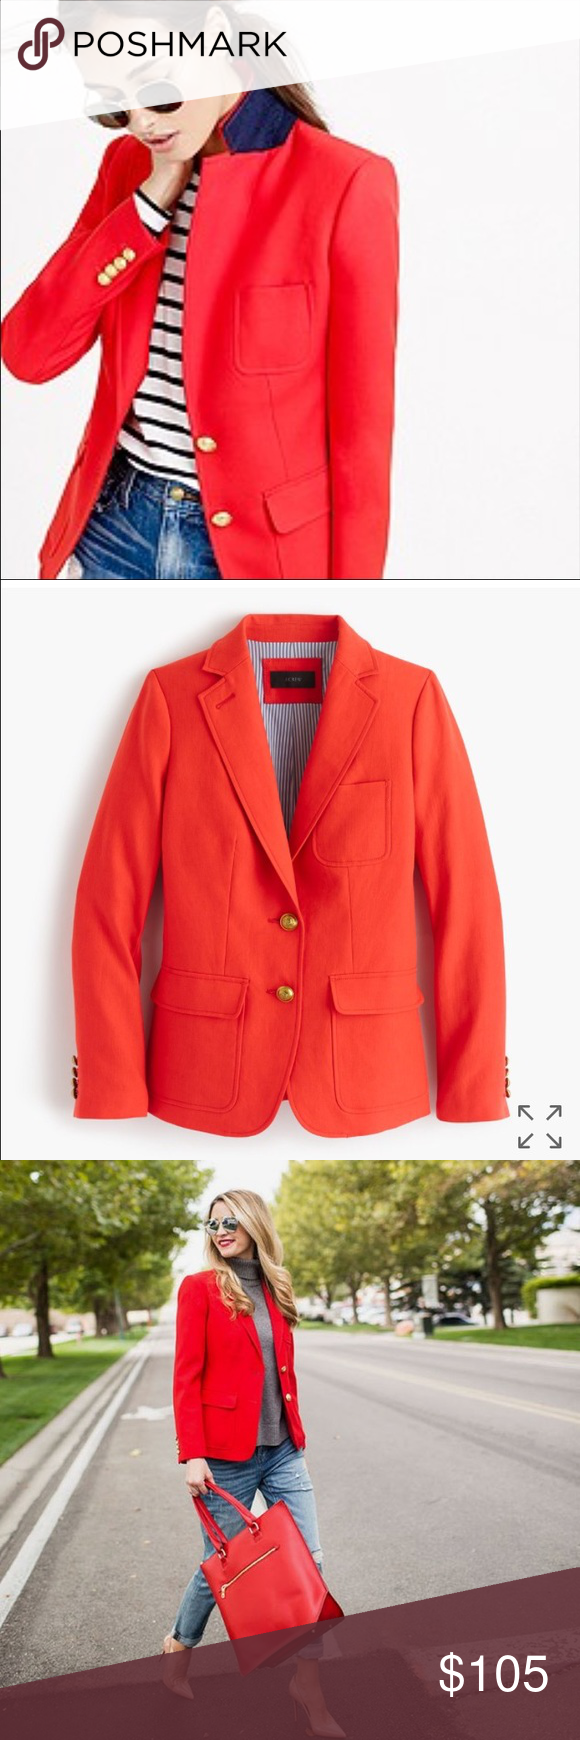 SOLD.  J. Crew linen blazer Classic fit blazer with gold hardware and bright blue stripe lining to contrast the the jacket. Measurements: body 23.5 inches, sleeve length 30 inches. J. Crew Jackets & Coats Blazers